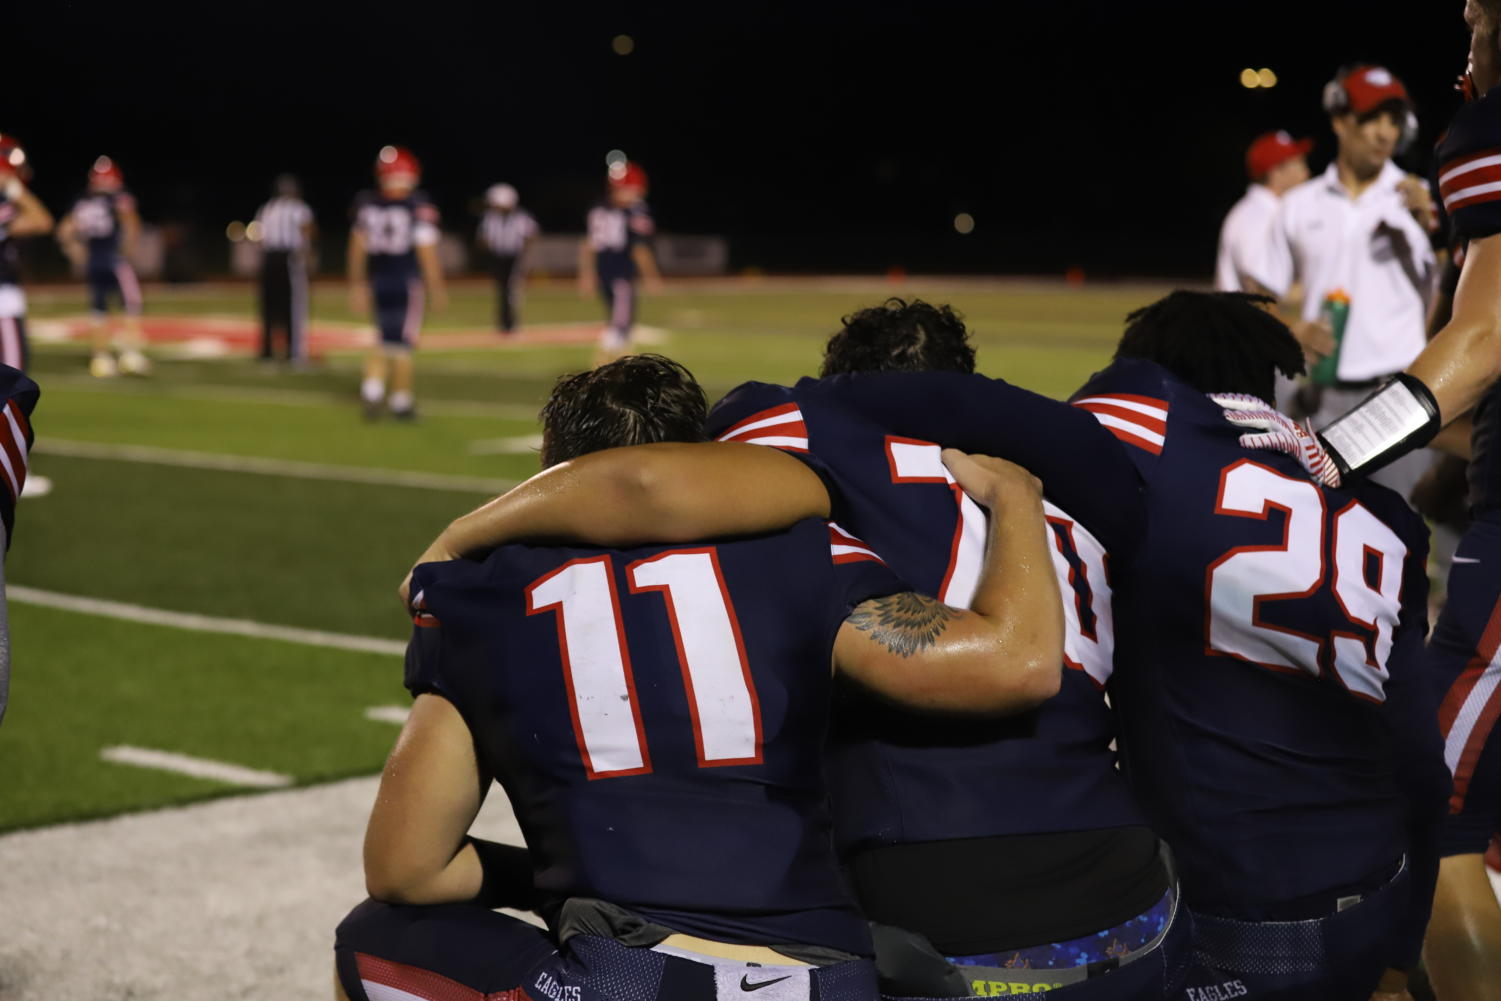 Seniors Cooper Terrell, Gabe Gonzalez and Jeremiah Williams embrace at the end of the senior night football game.